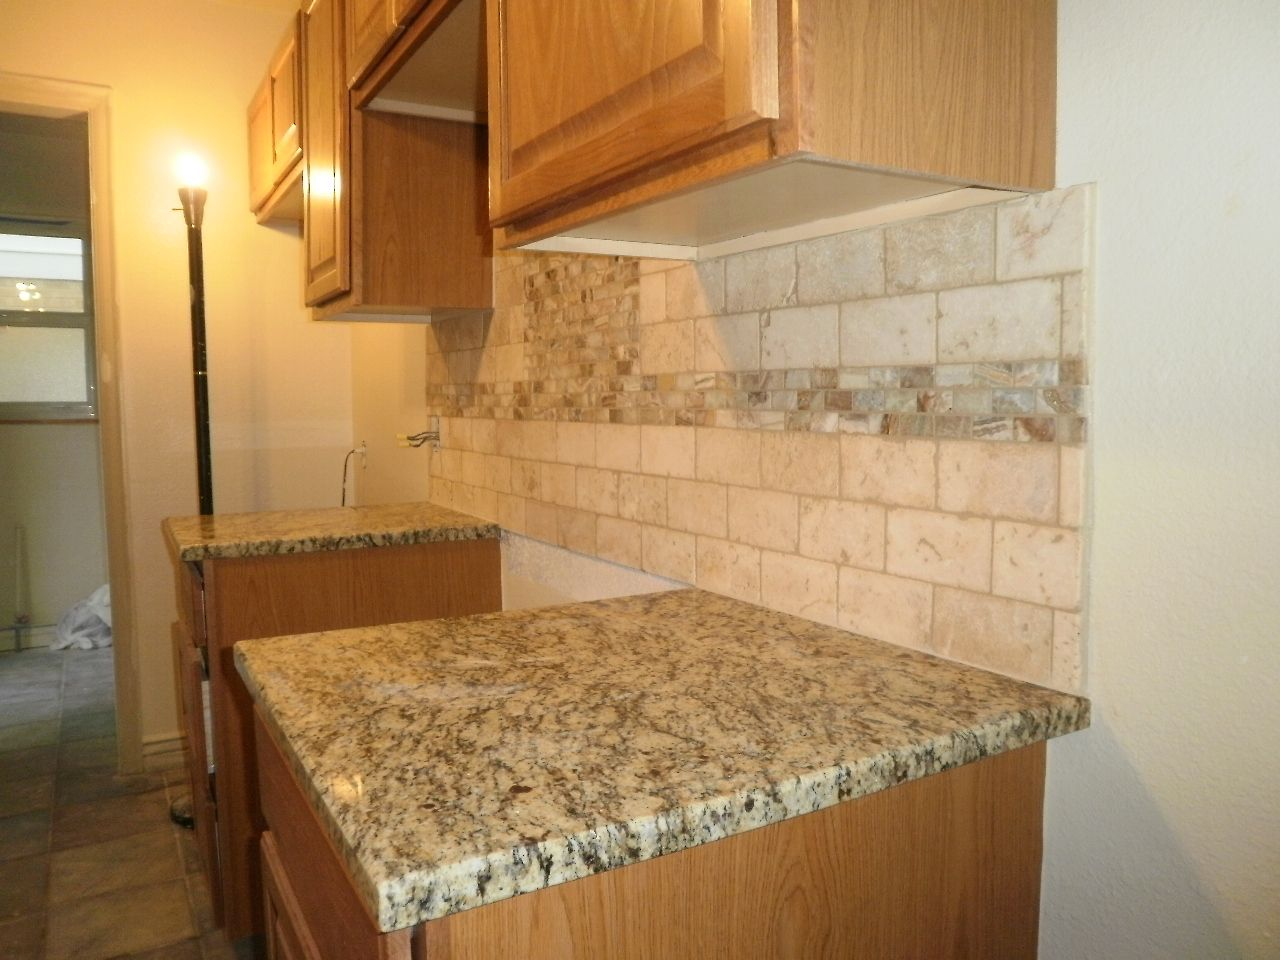 Awesome Tumbled Travertine Backsplash Ideas Part - 7: Travertine Tile Backsplash | ... Backsplash): Just Completed! 3x6 Tumbled  Travertine